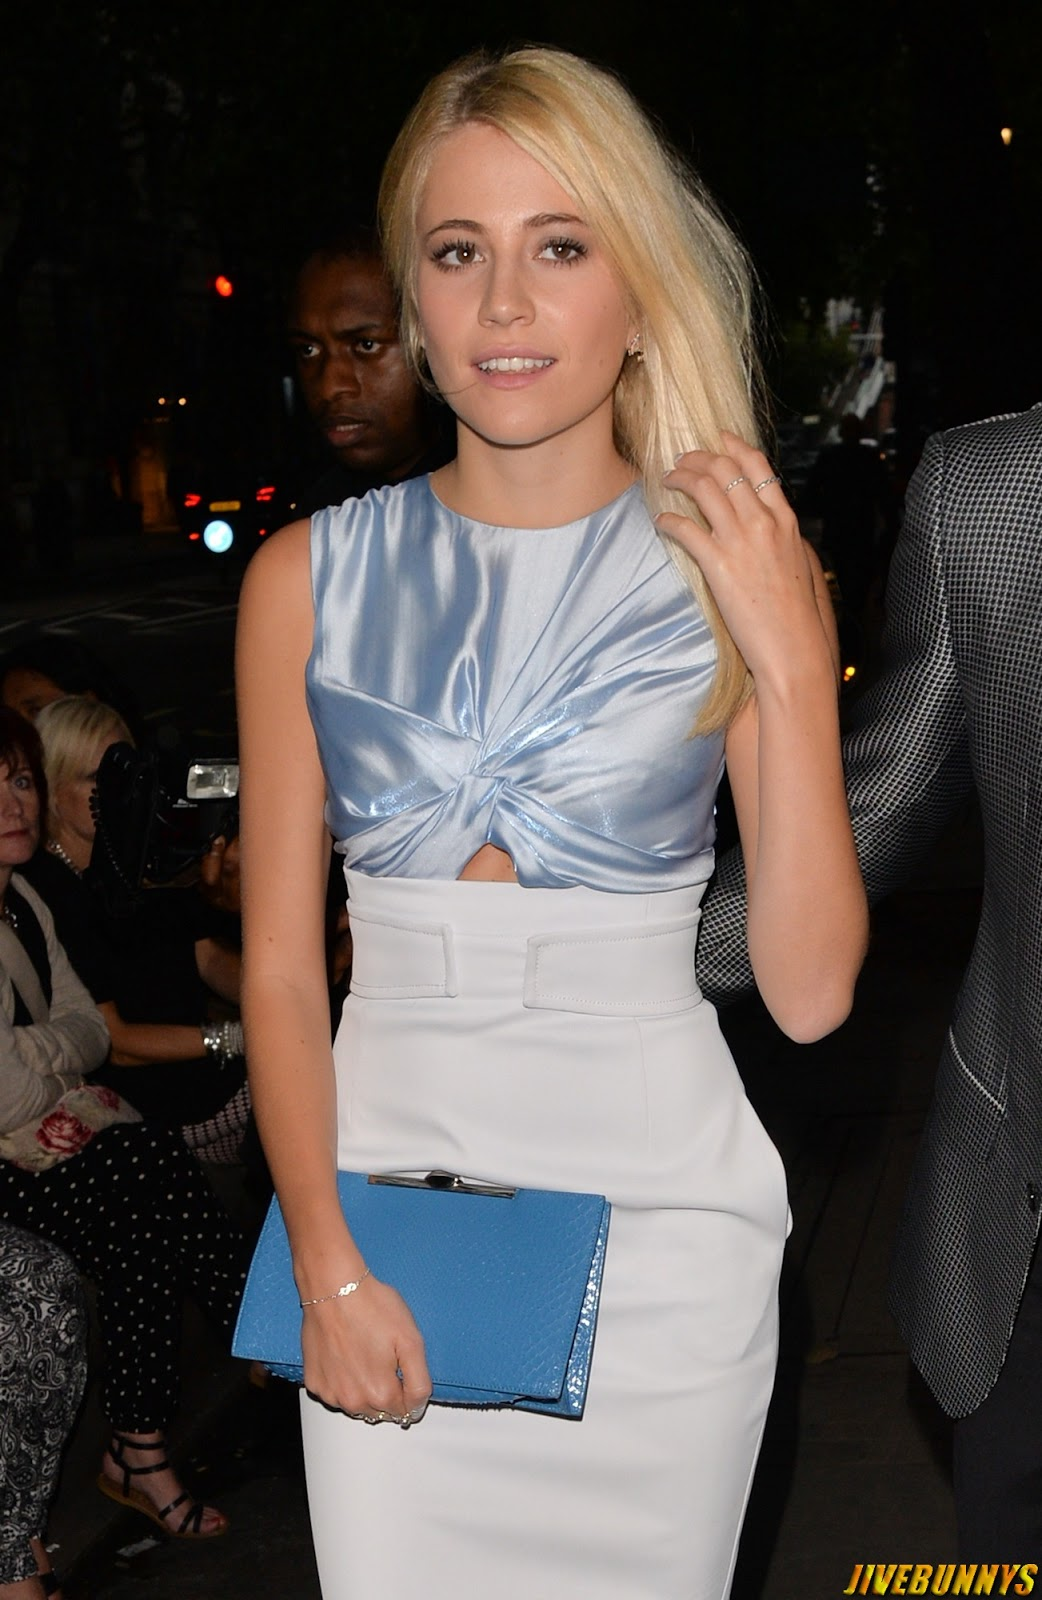 Pixie Lott @ Scottish Fashion Awards 2014 in London - September 1, 2014